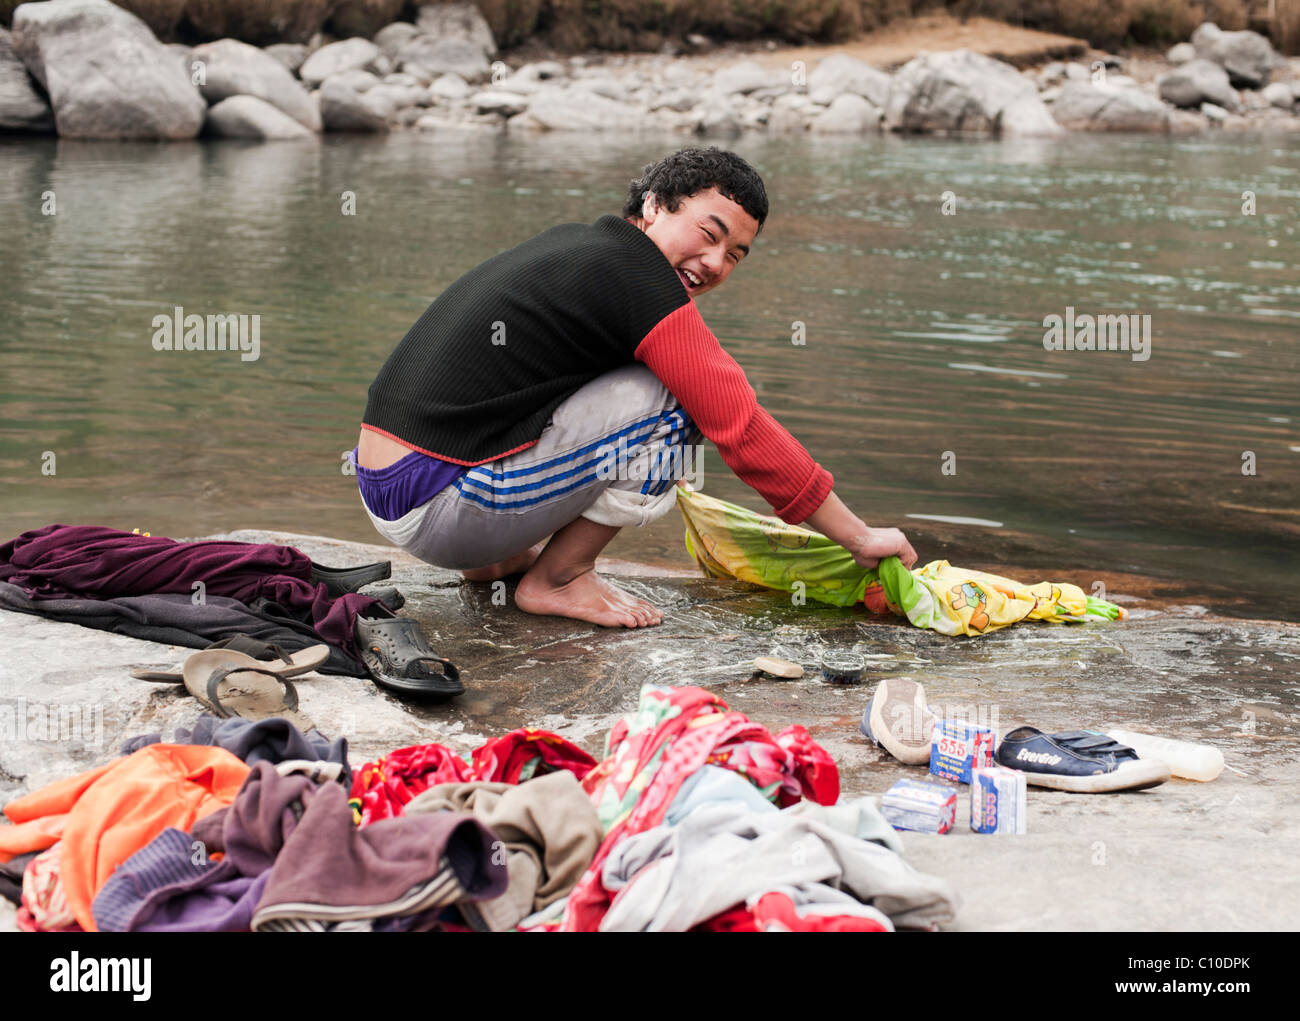 Young Bhutanese boy doing laundry in a river in Bumthang, Bhutan. - Stock Image